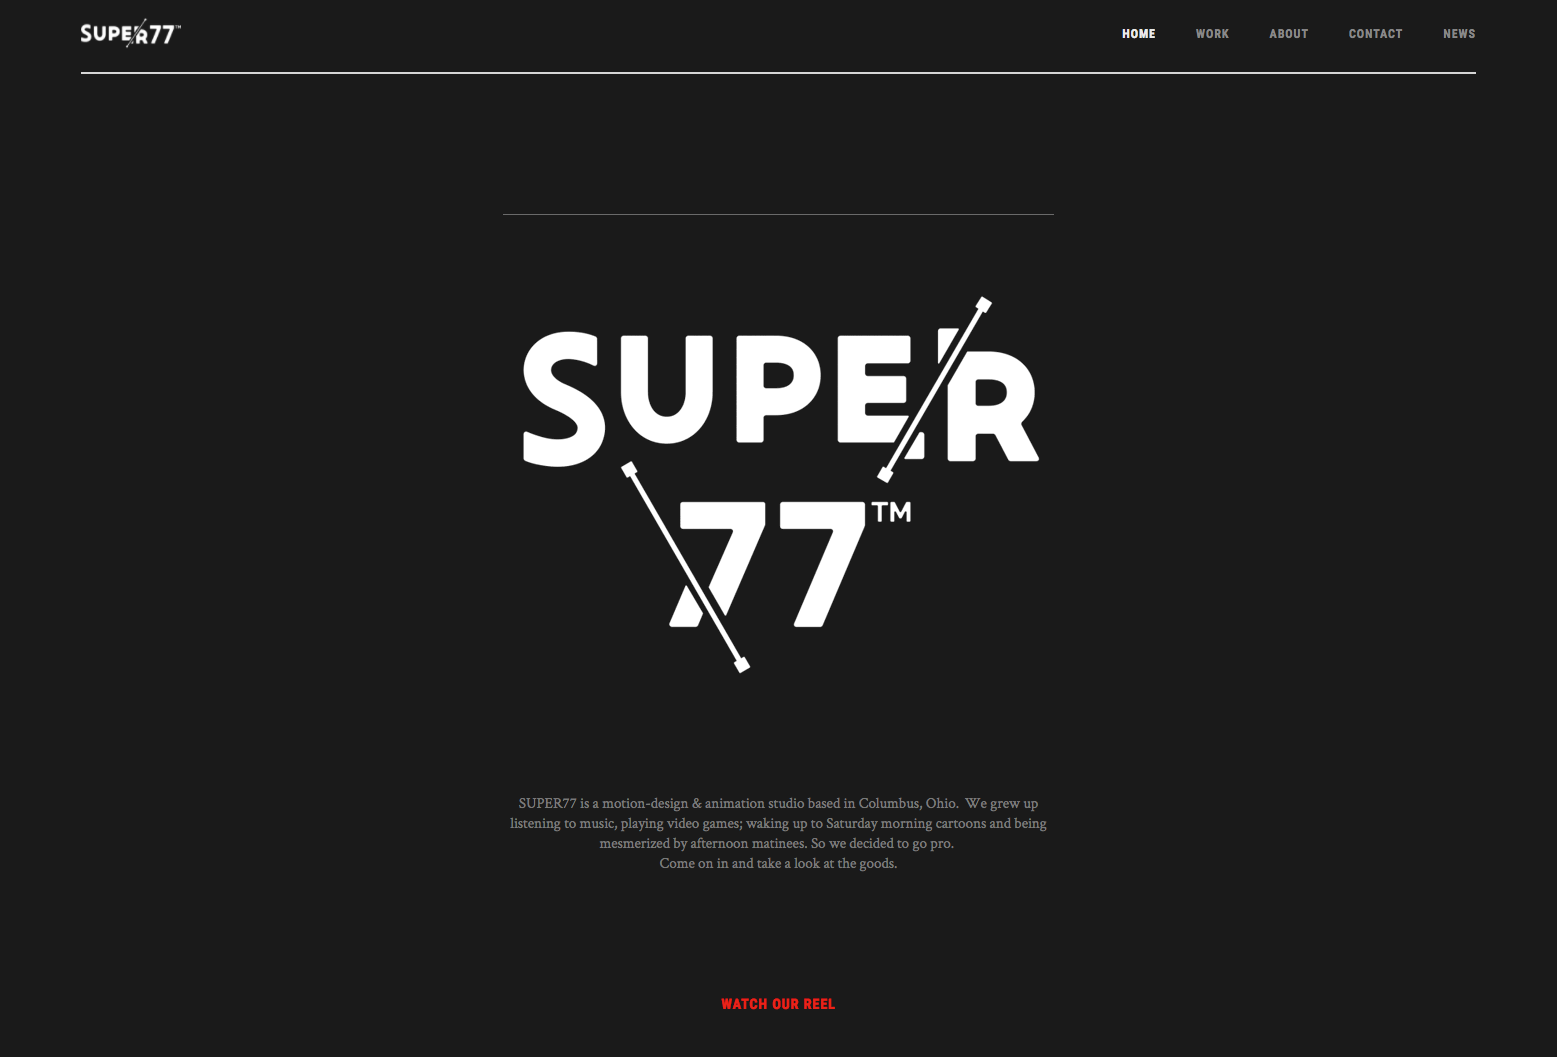 Super77 agency website homepage